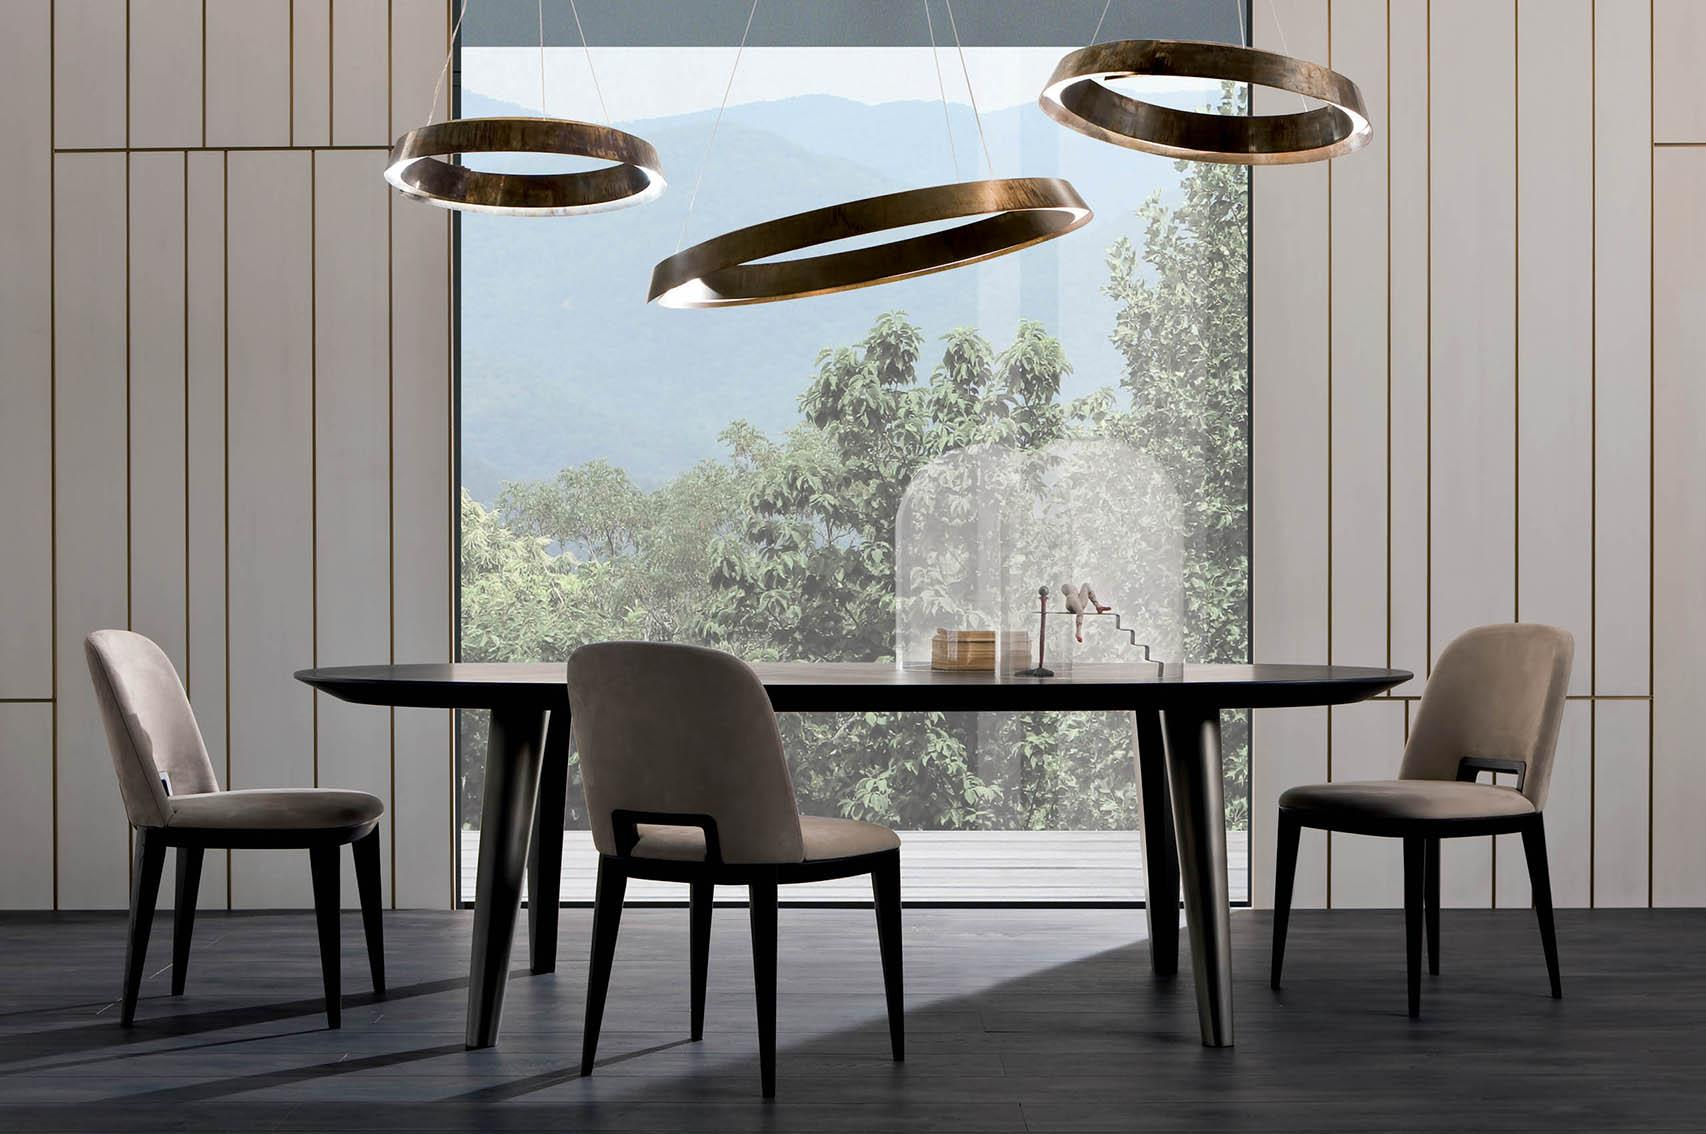 Laurameroni luxury modern made to measure bespoke wooden tables for contemporary interior decor and design